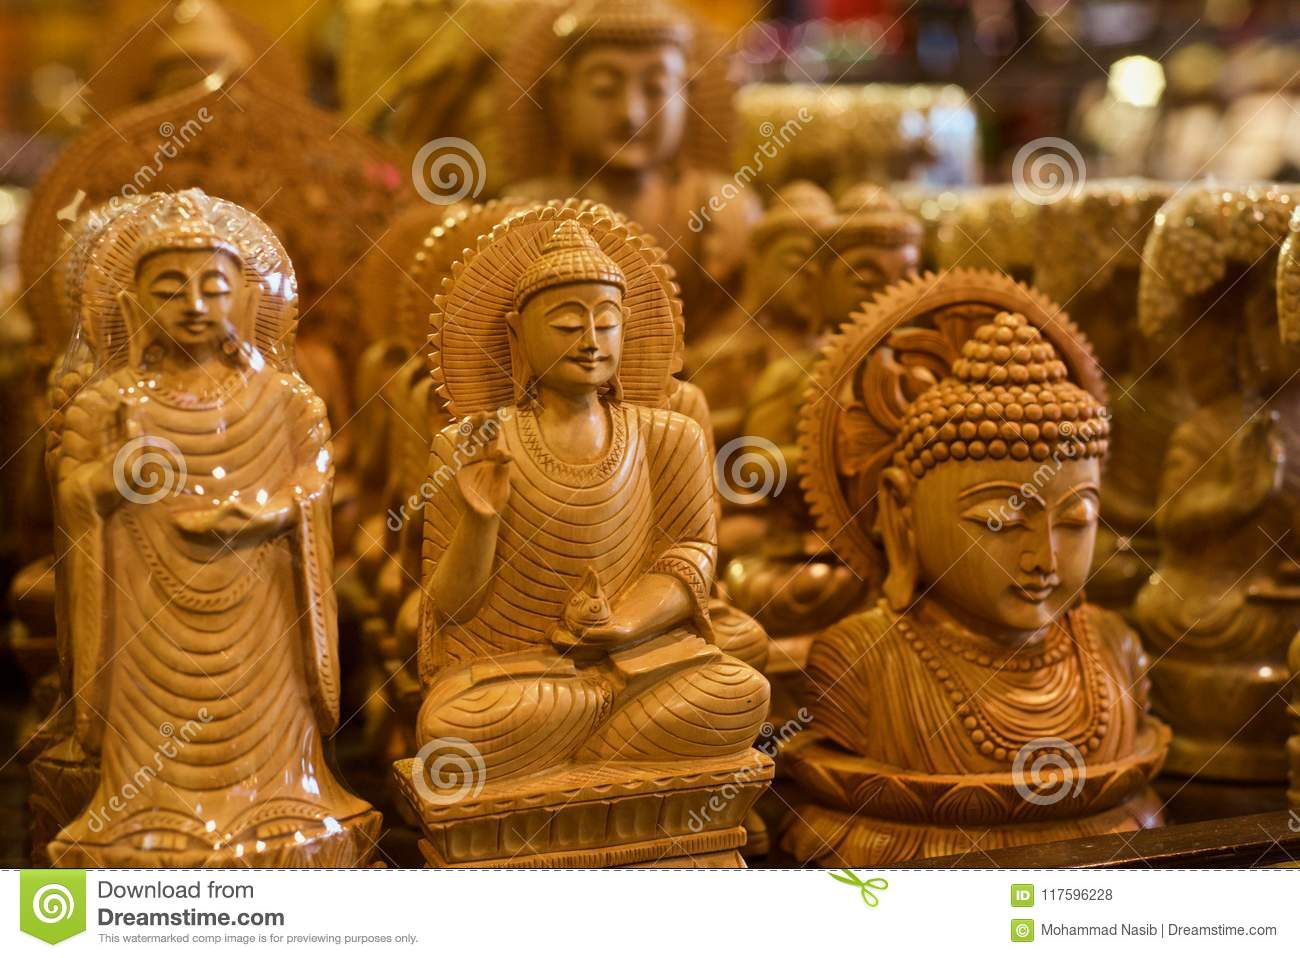 Download Hindu Religious God Isolated Wooden Object Unique Photo Stock Photo - Image of wooden, object: 117596228